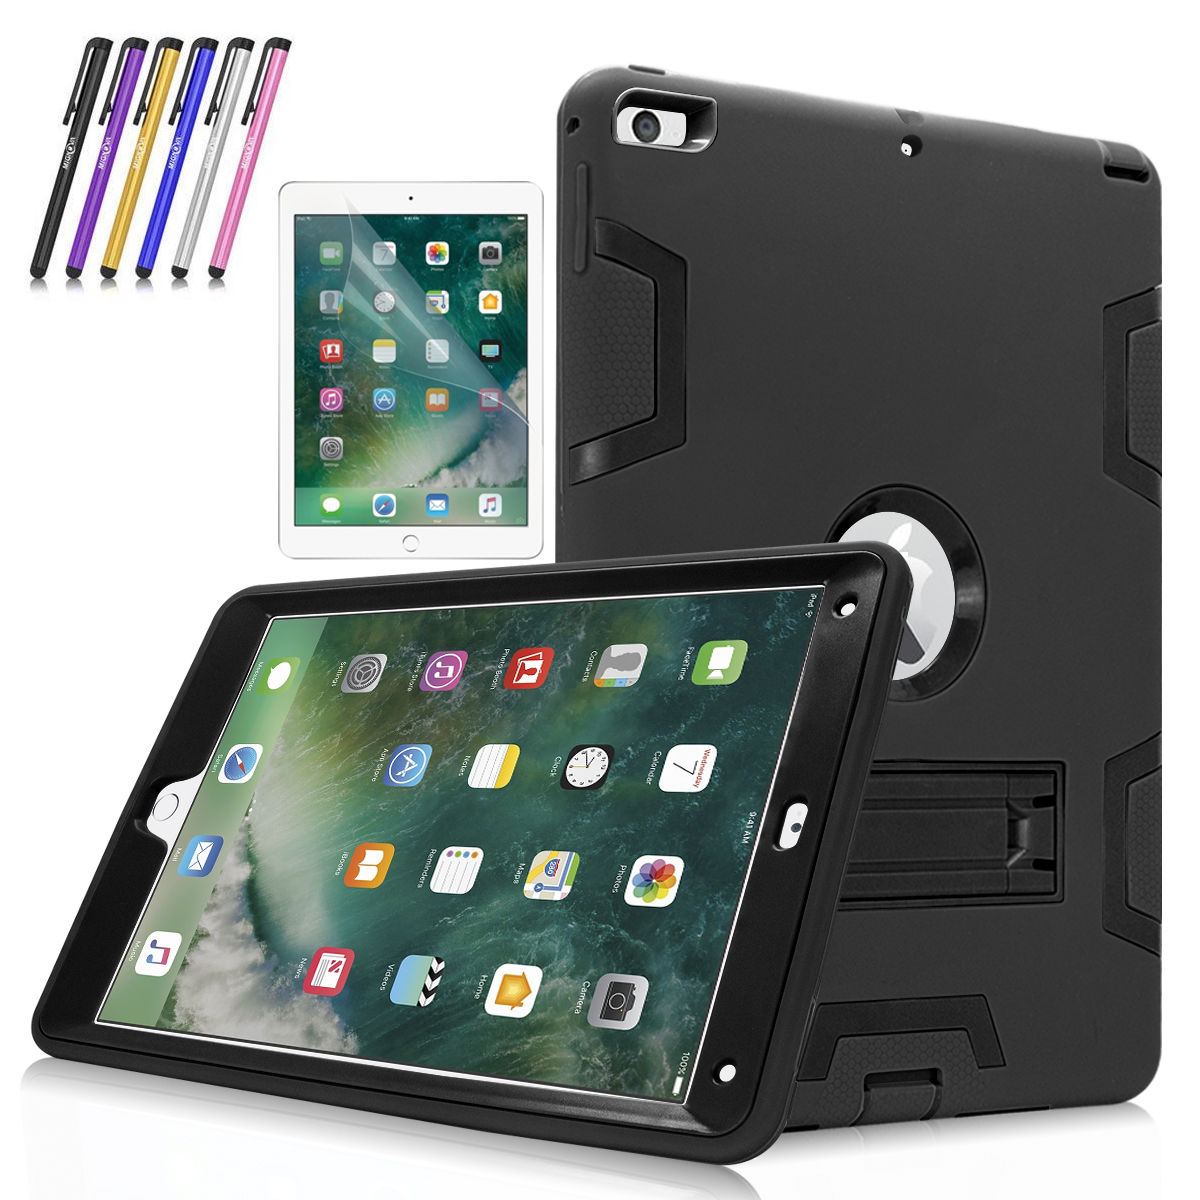 New iPad 9.7 case, Mignova Heavy Duty rugged Hybrid Protective Case with Kickstand for iPad 9.7 5th/6th Generation 2017/2018 A1822/A1823 + Screen Protector Film and Stylus Pen (Black / Black)